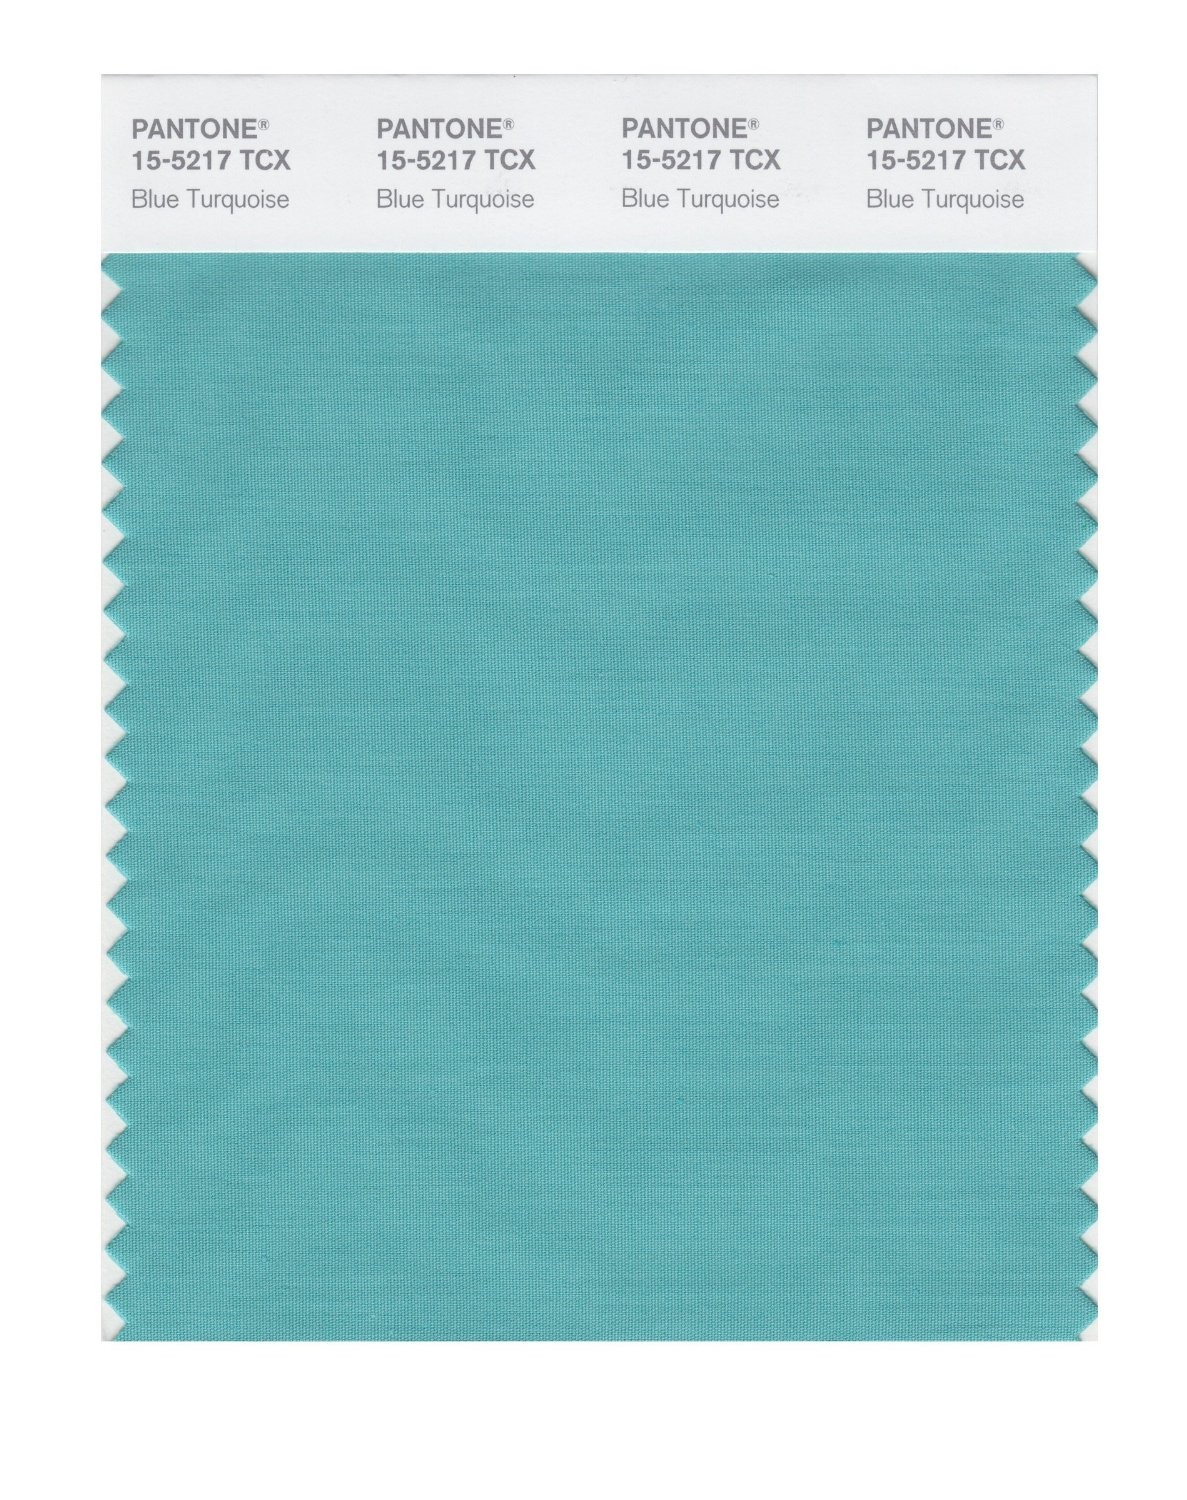 Pantone 15-5217 TCX Swatch Card Blue Turquoise